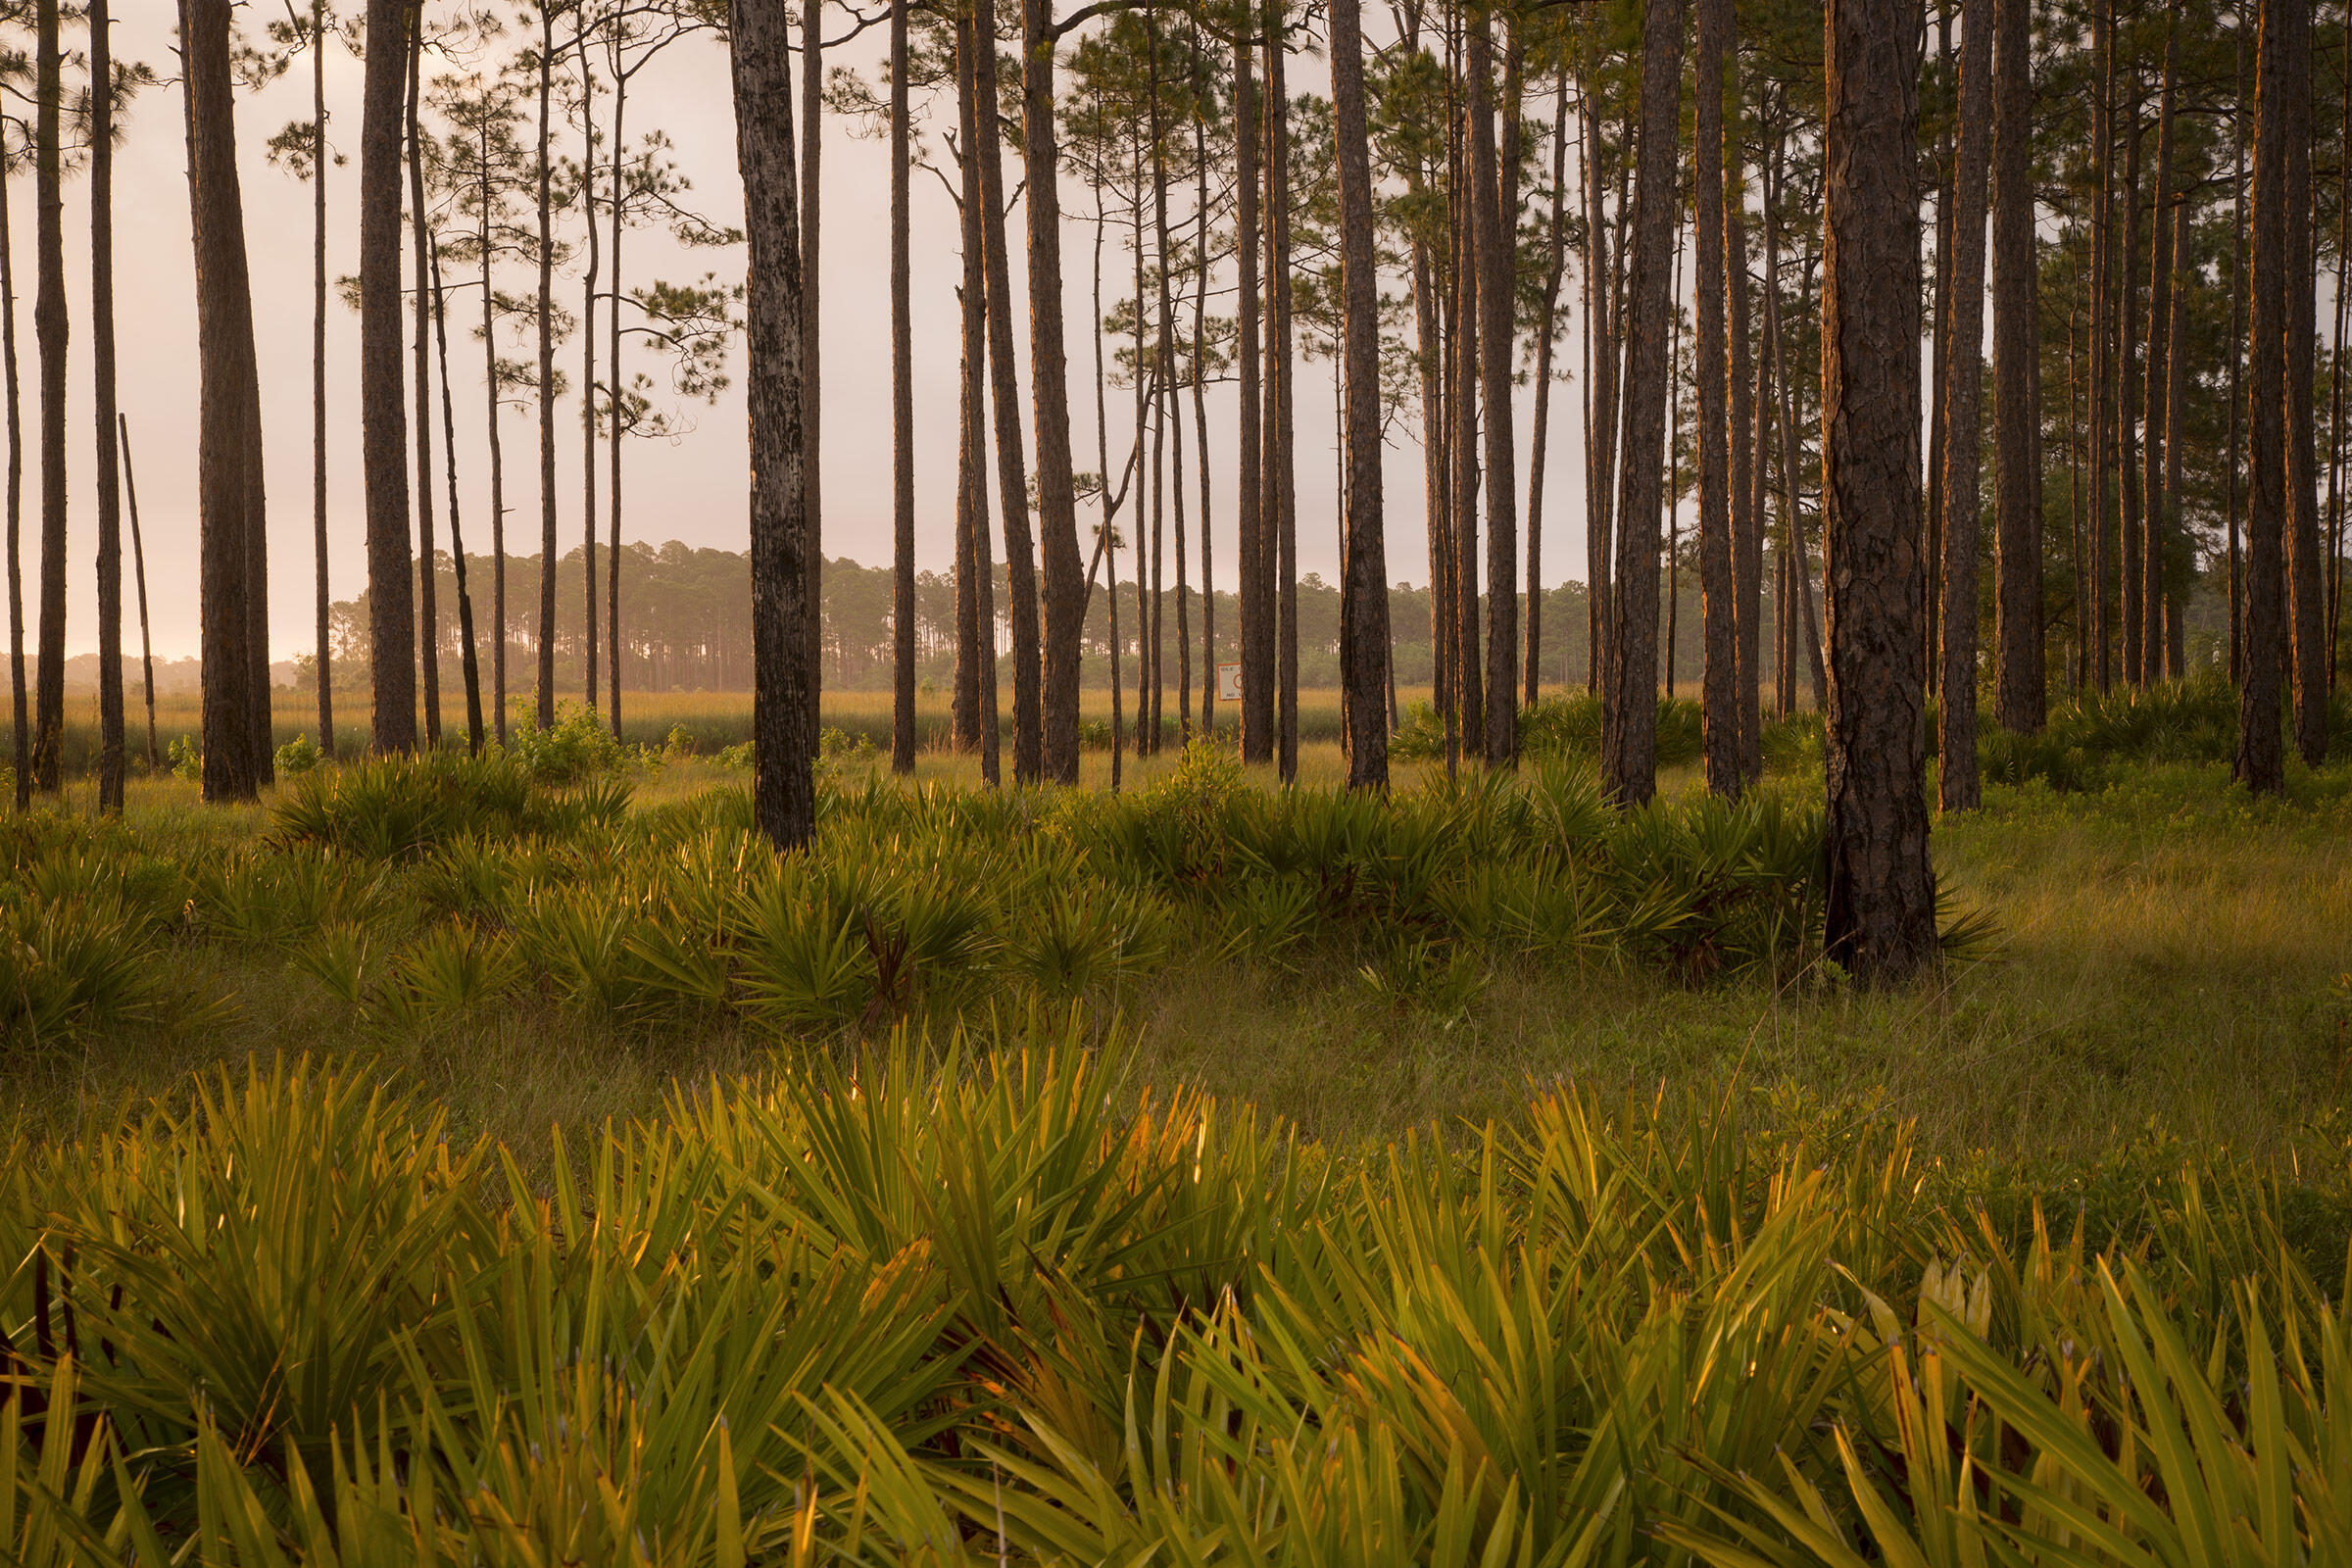 Today's largest concentration of RCWs lives in central Florida's Panhandle, which includes the St. Marks wildlife refuge. Mac Stone